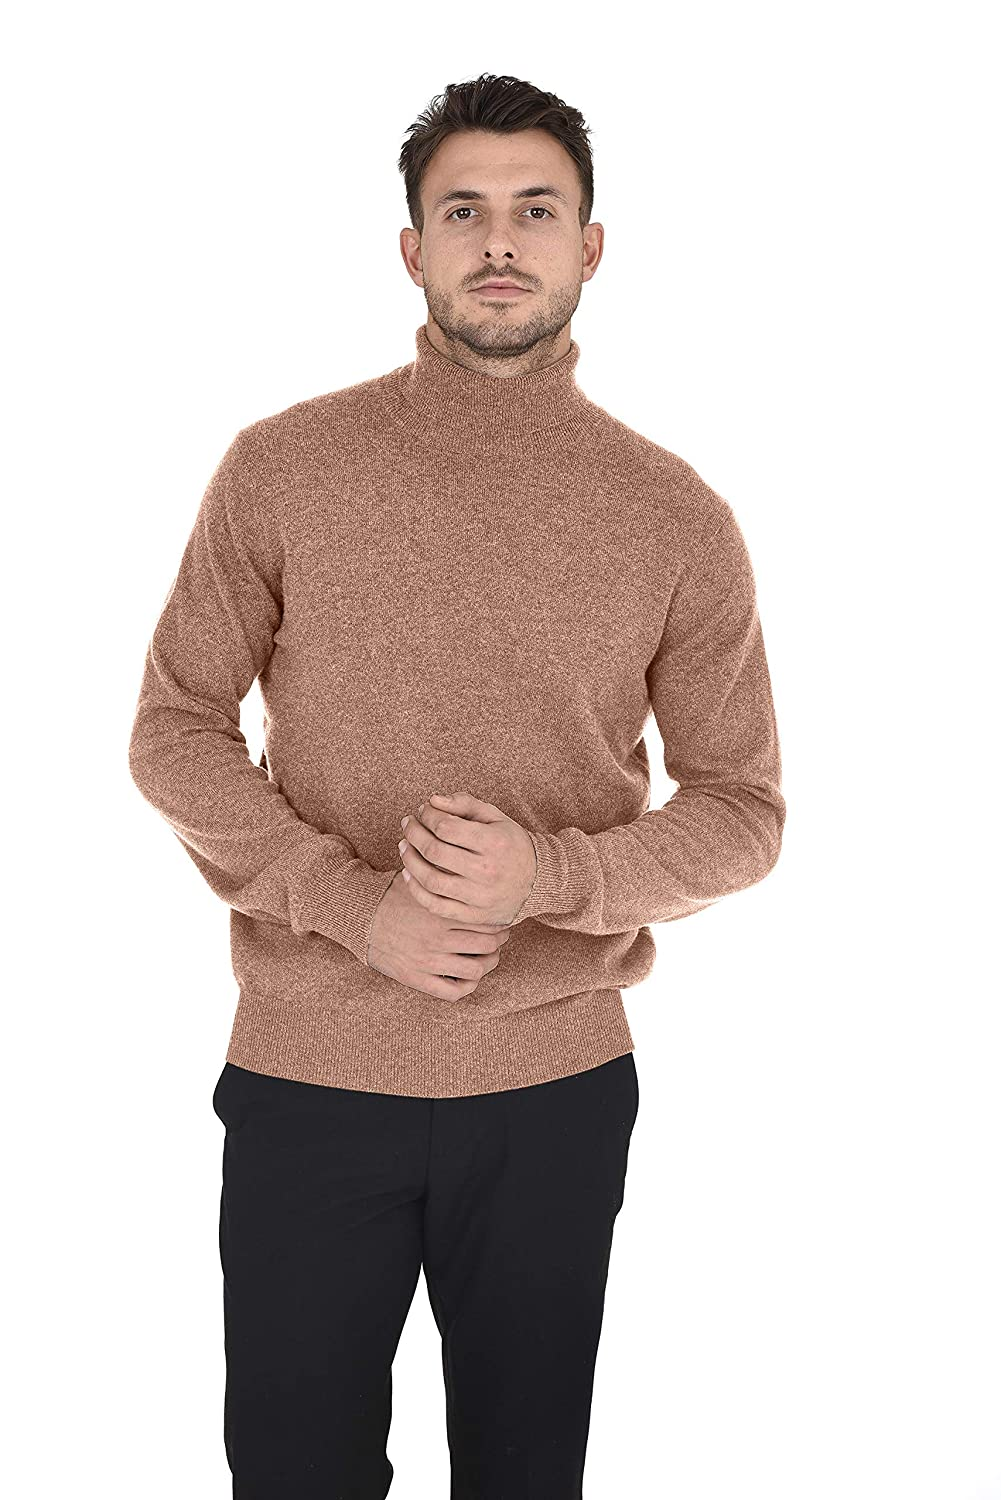 e92e6eece Amazon.com  Cashmeren Men s Wool Cashmere Classic Knit Soft Long Sleeve  Turtleneck Pullover Sweater  Clothing